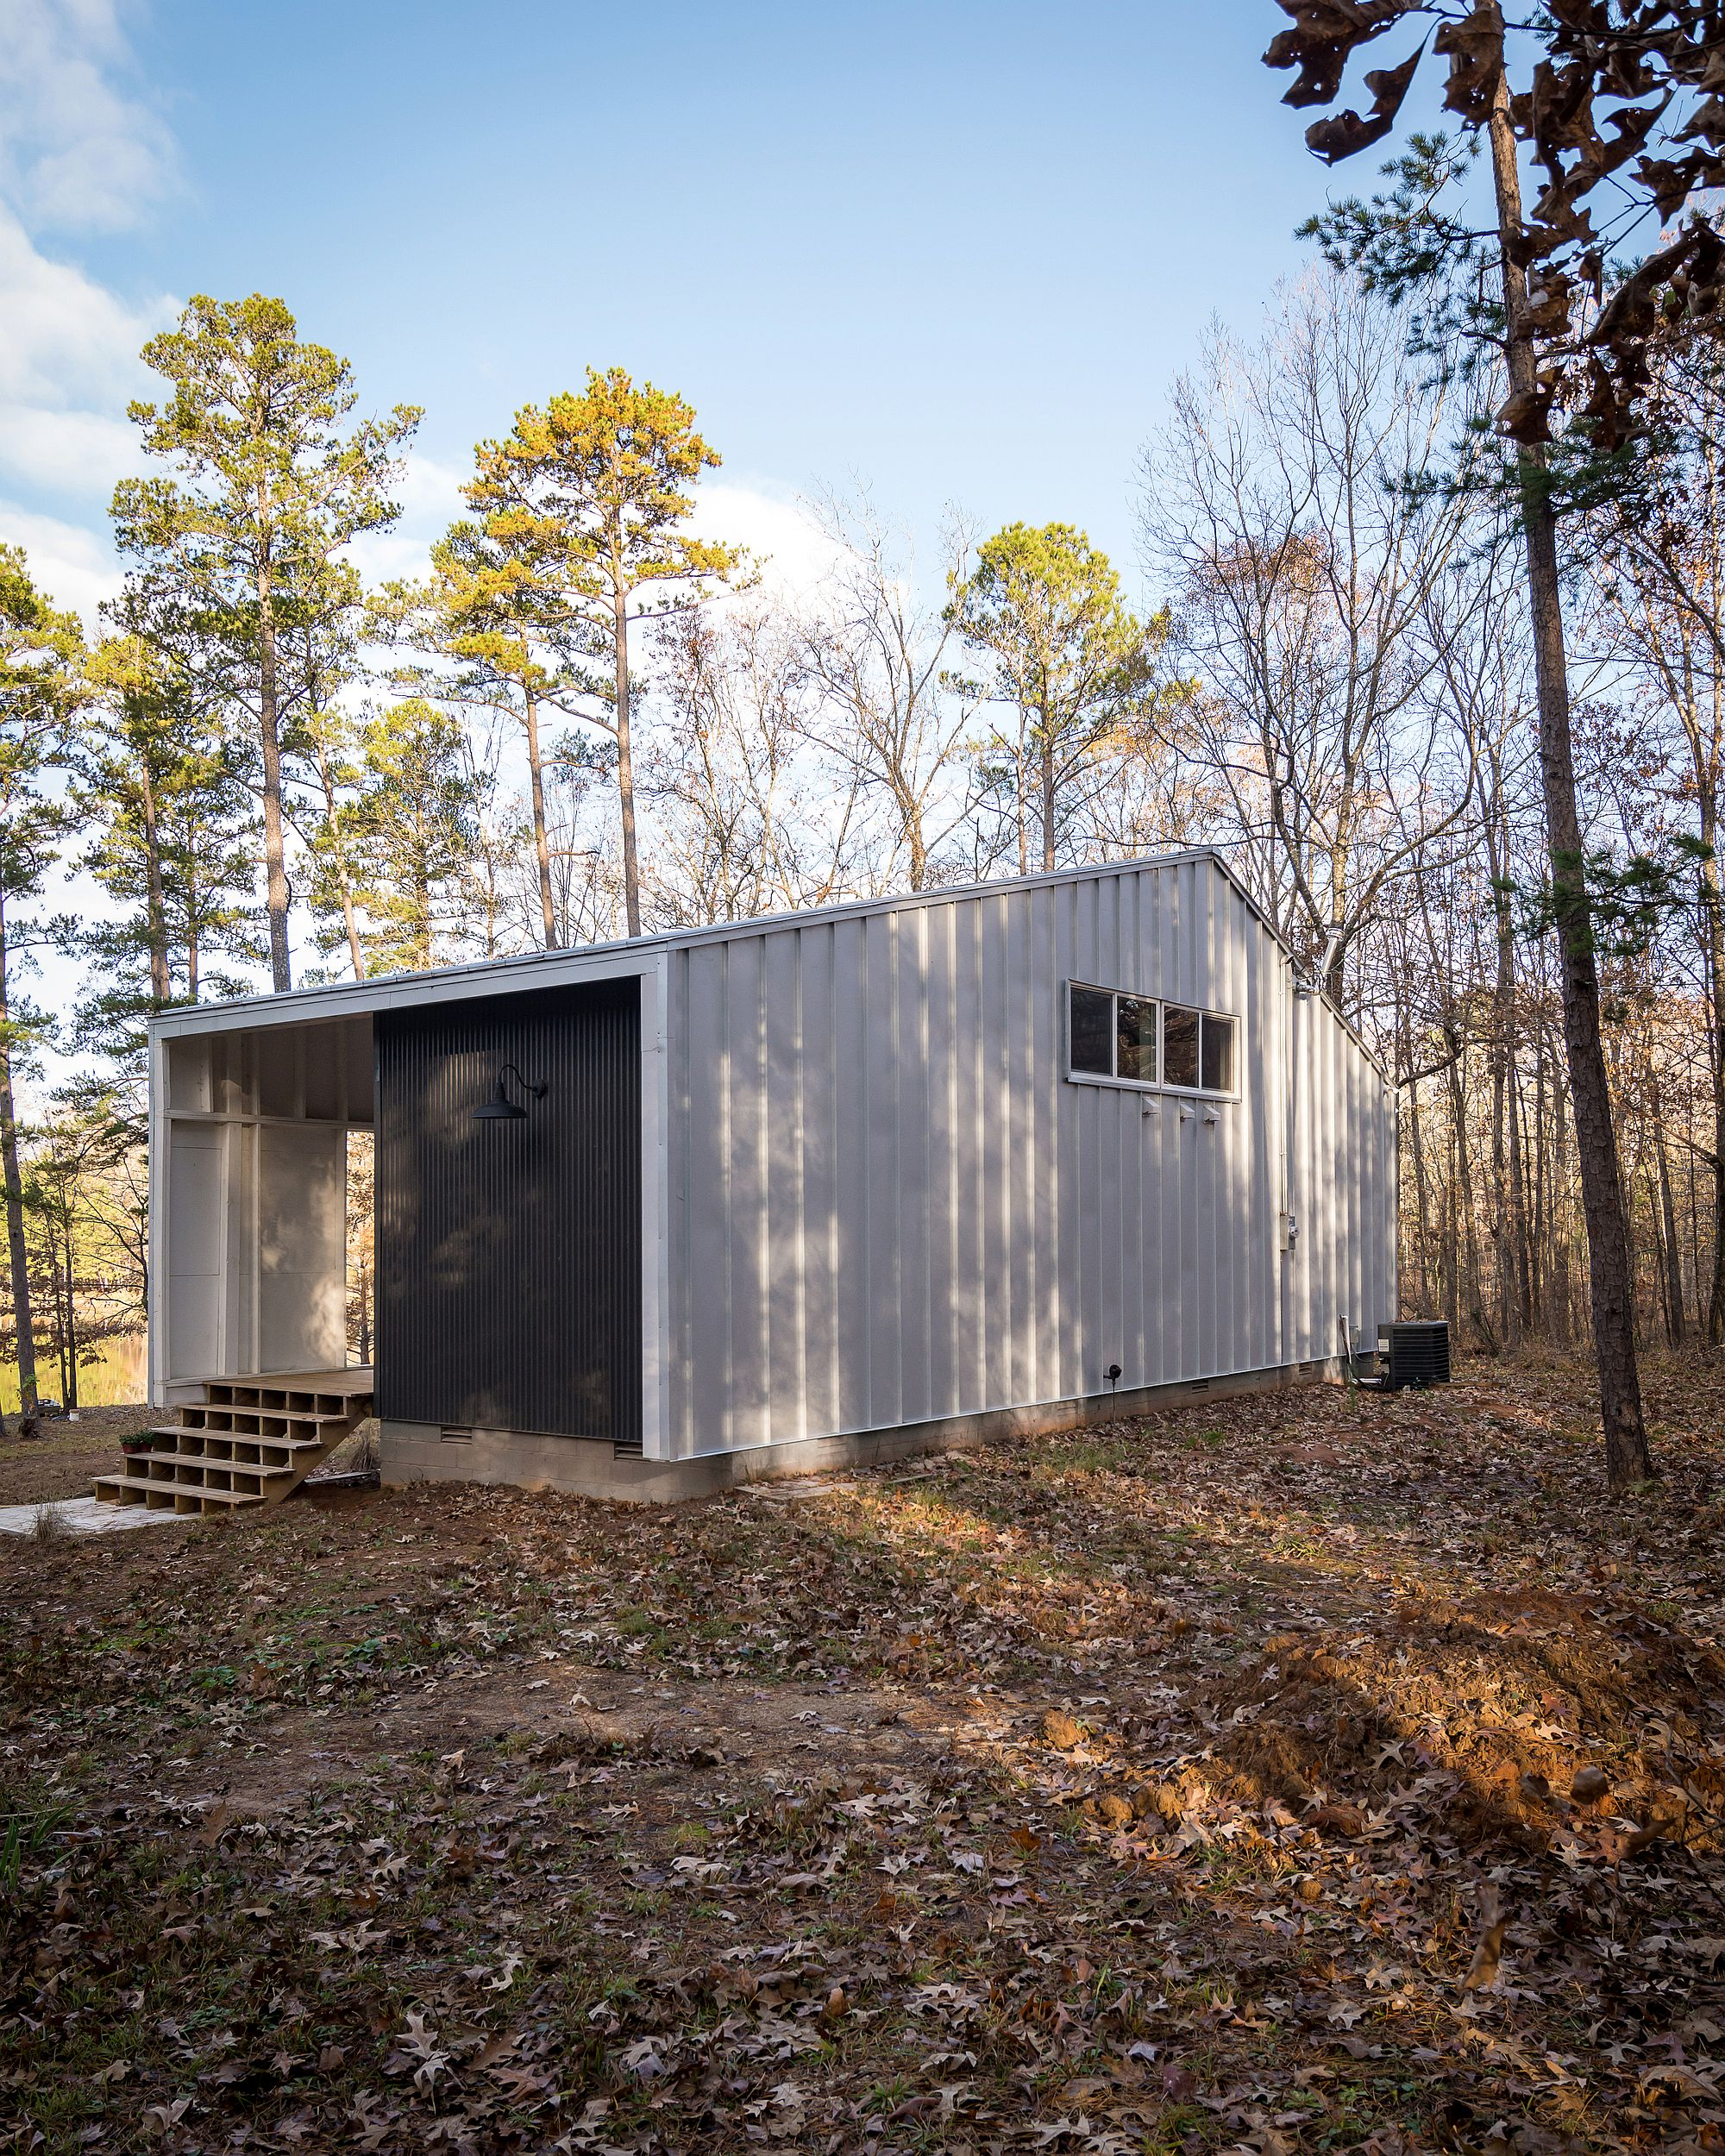 Metal panels create a cool cabin in the woods